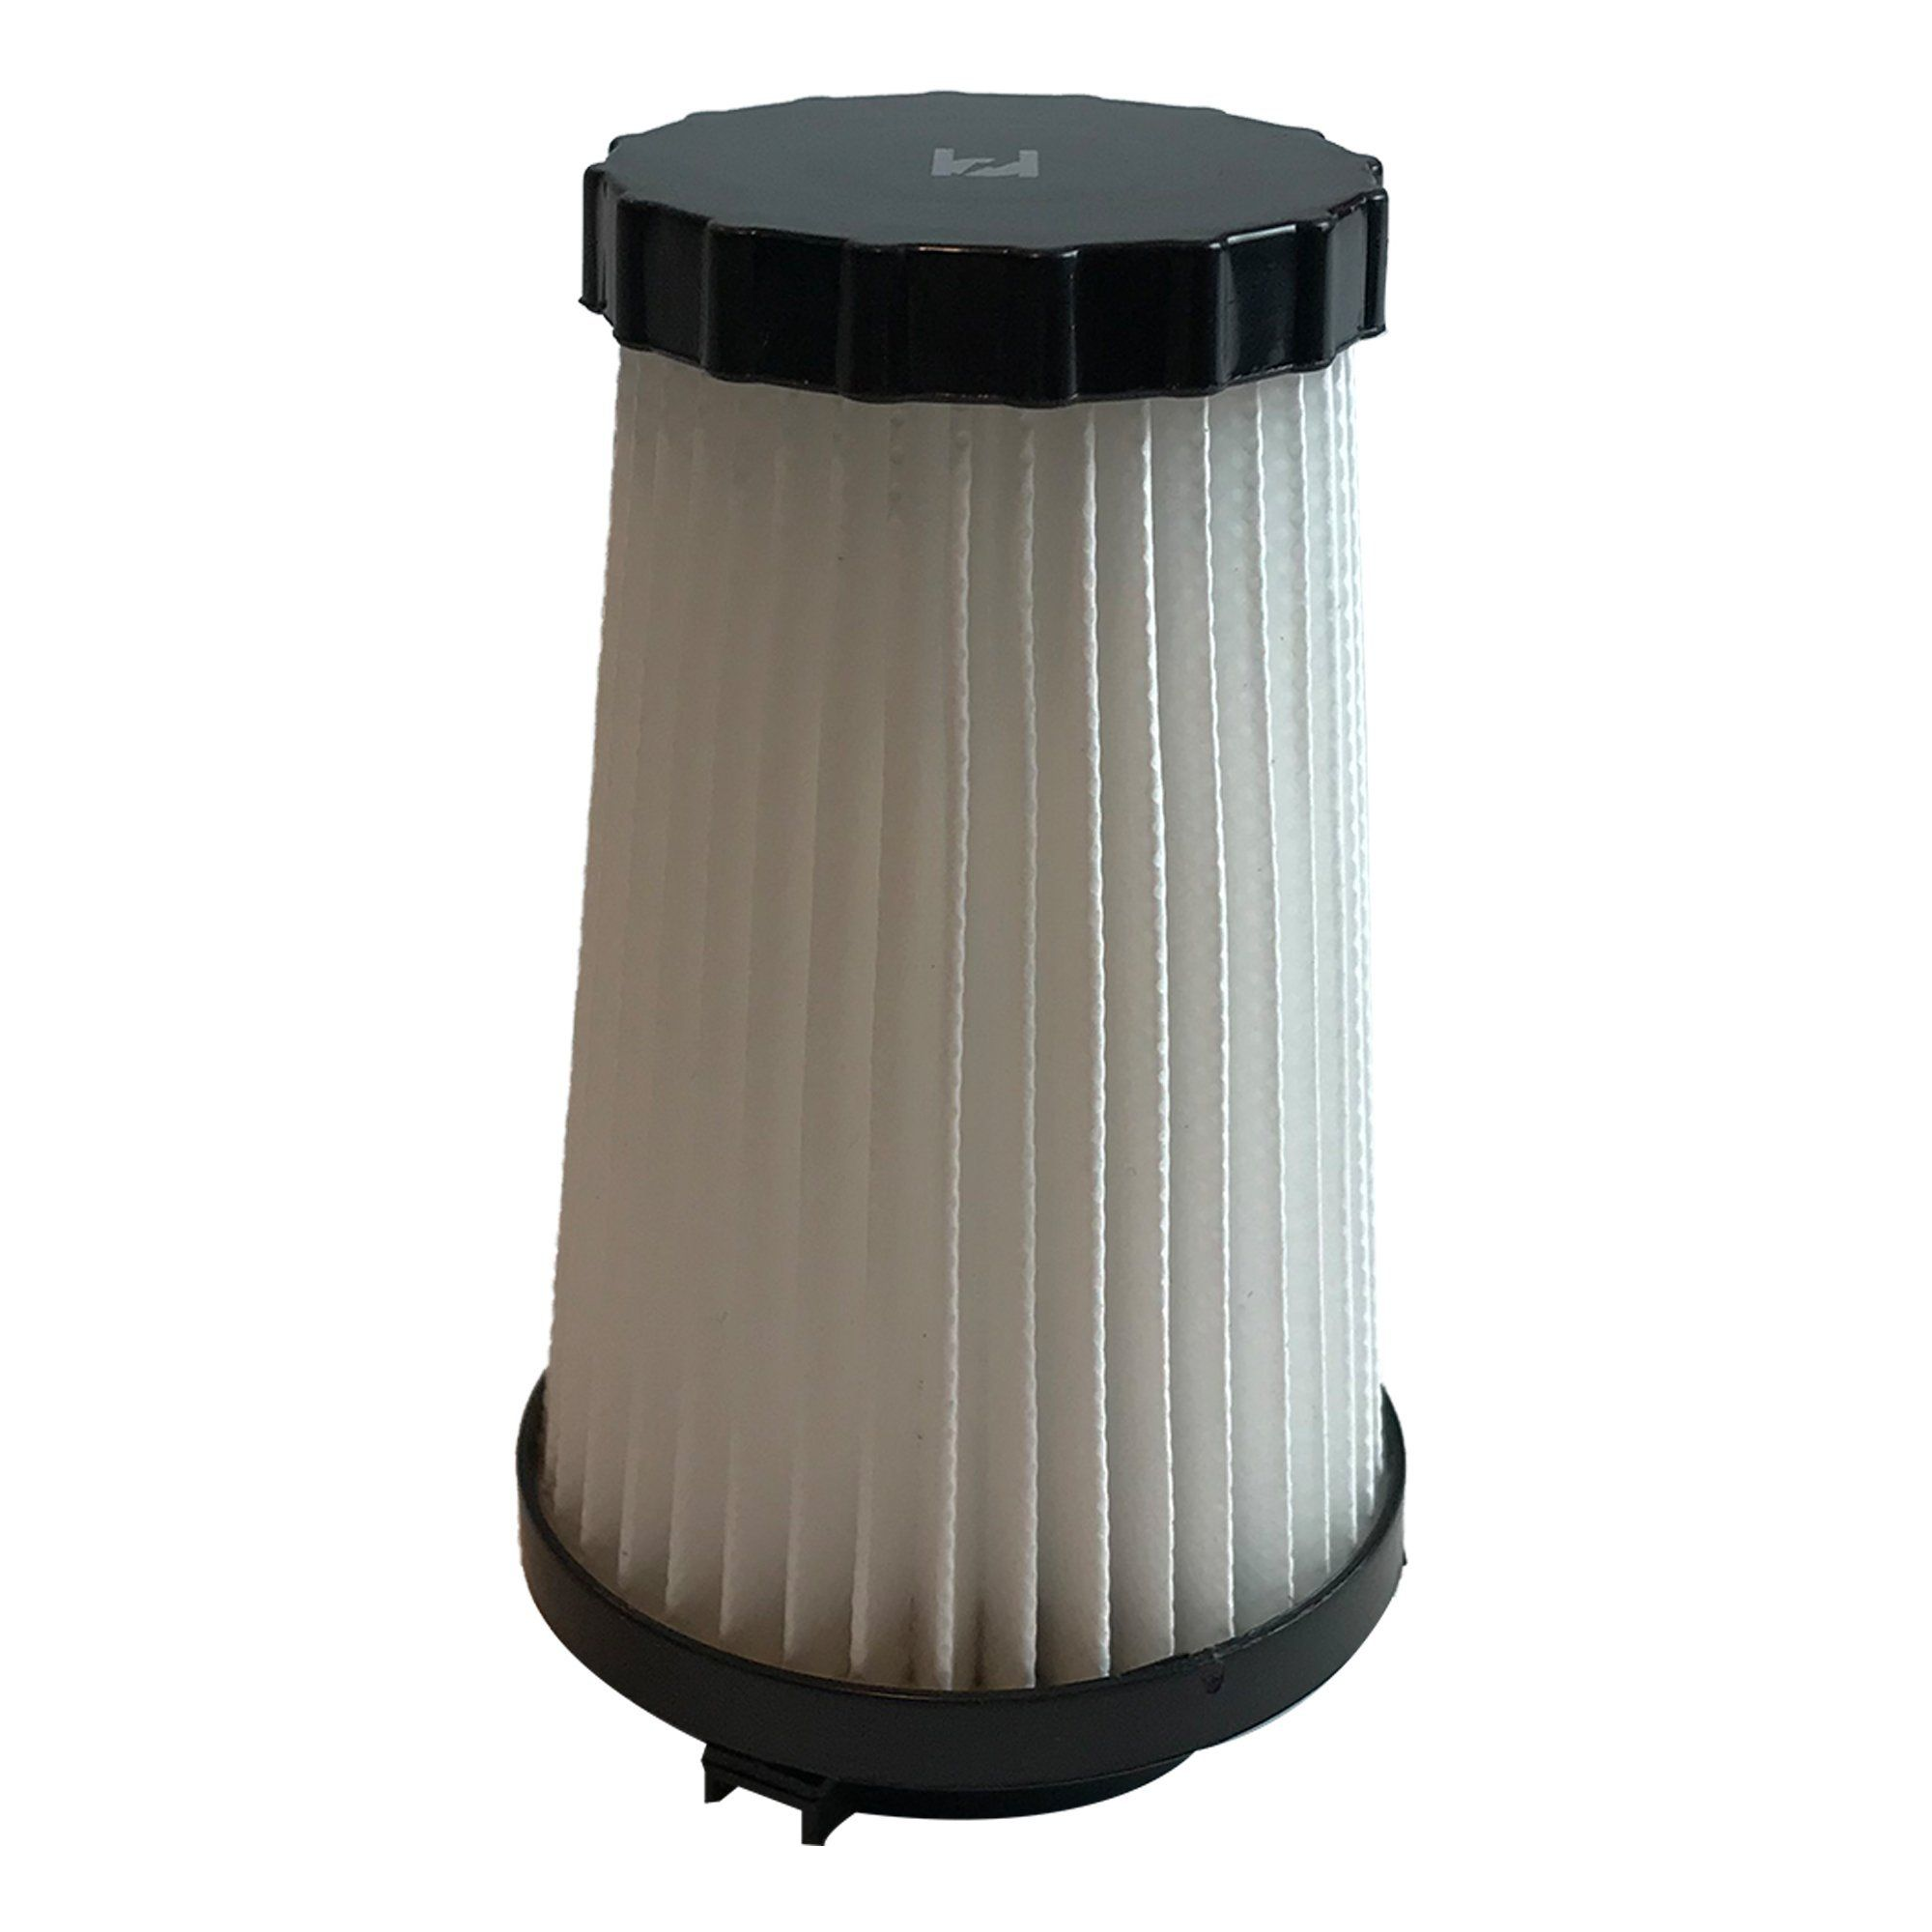 1 Dust Cup Filter HEPA 3SFA11500X F2 Dirt Devil Vacuum Dynamite Quick Flex Flip